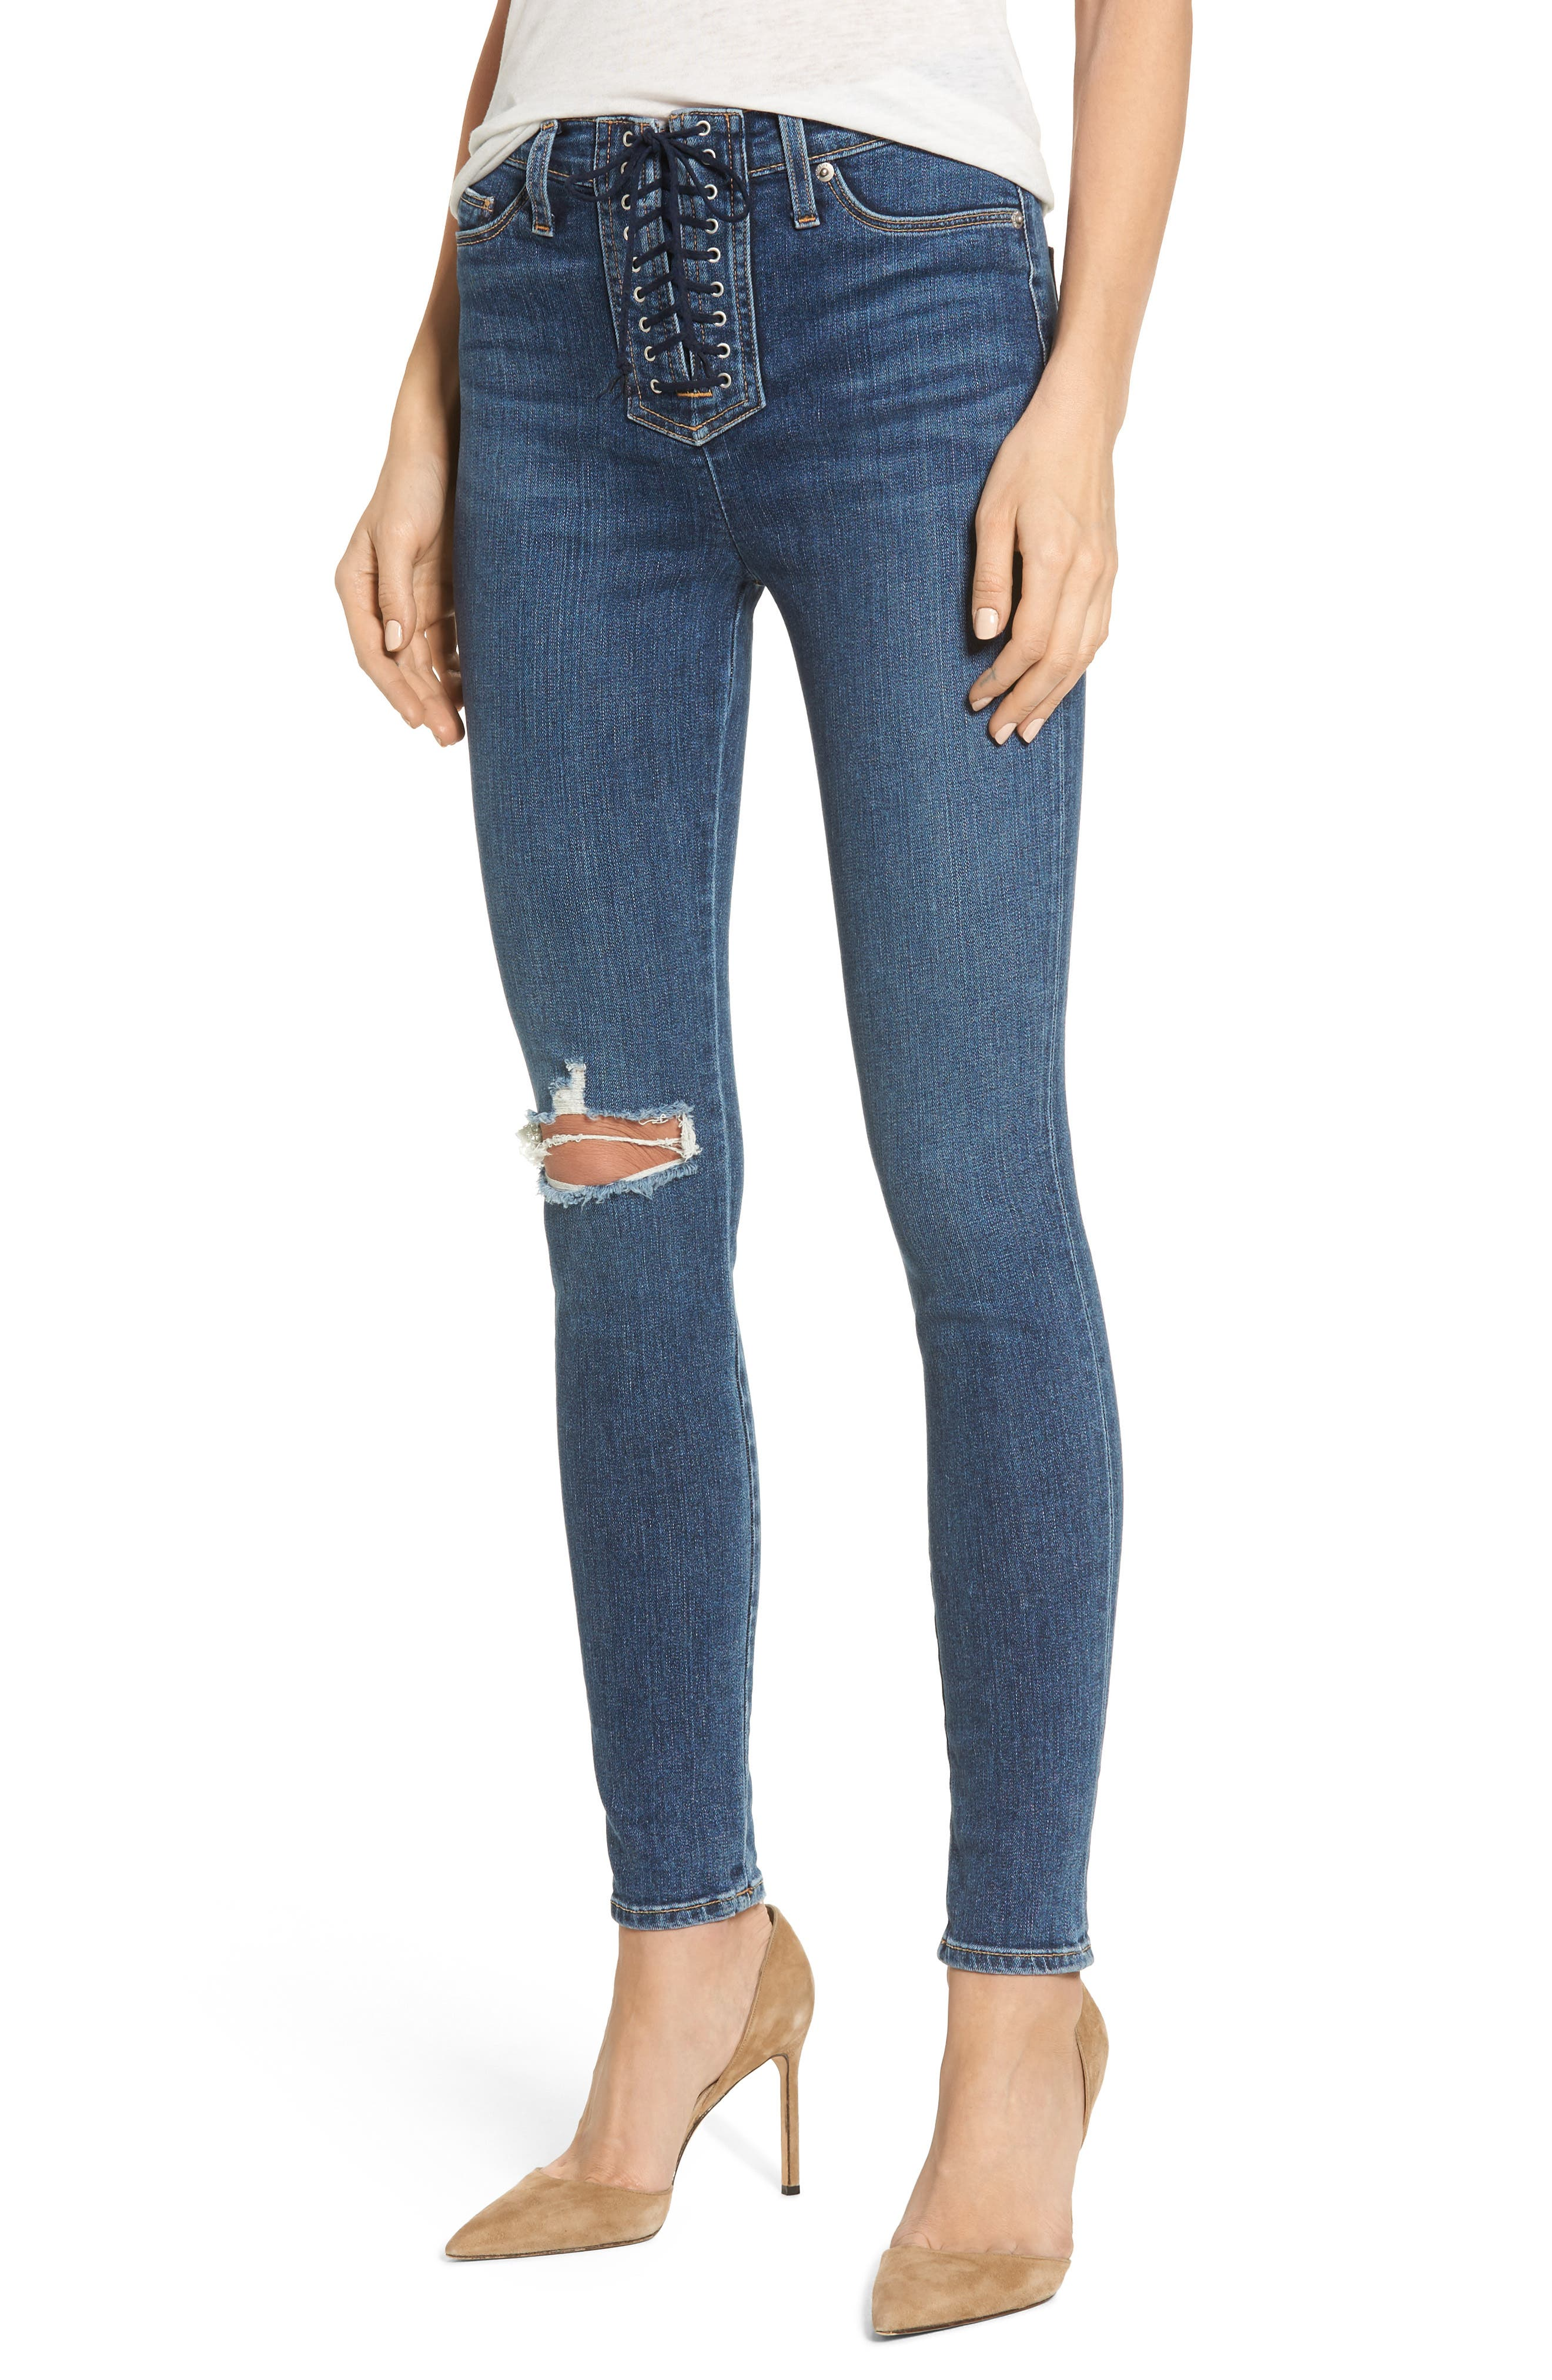 Bullocks Lace-Up High Waist Super Skinny Jeans,                             Main thumbnail 1, color,                             421